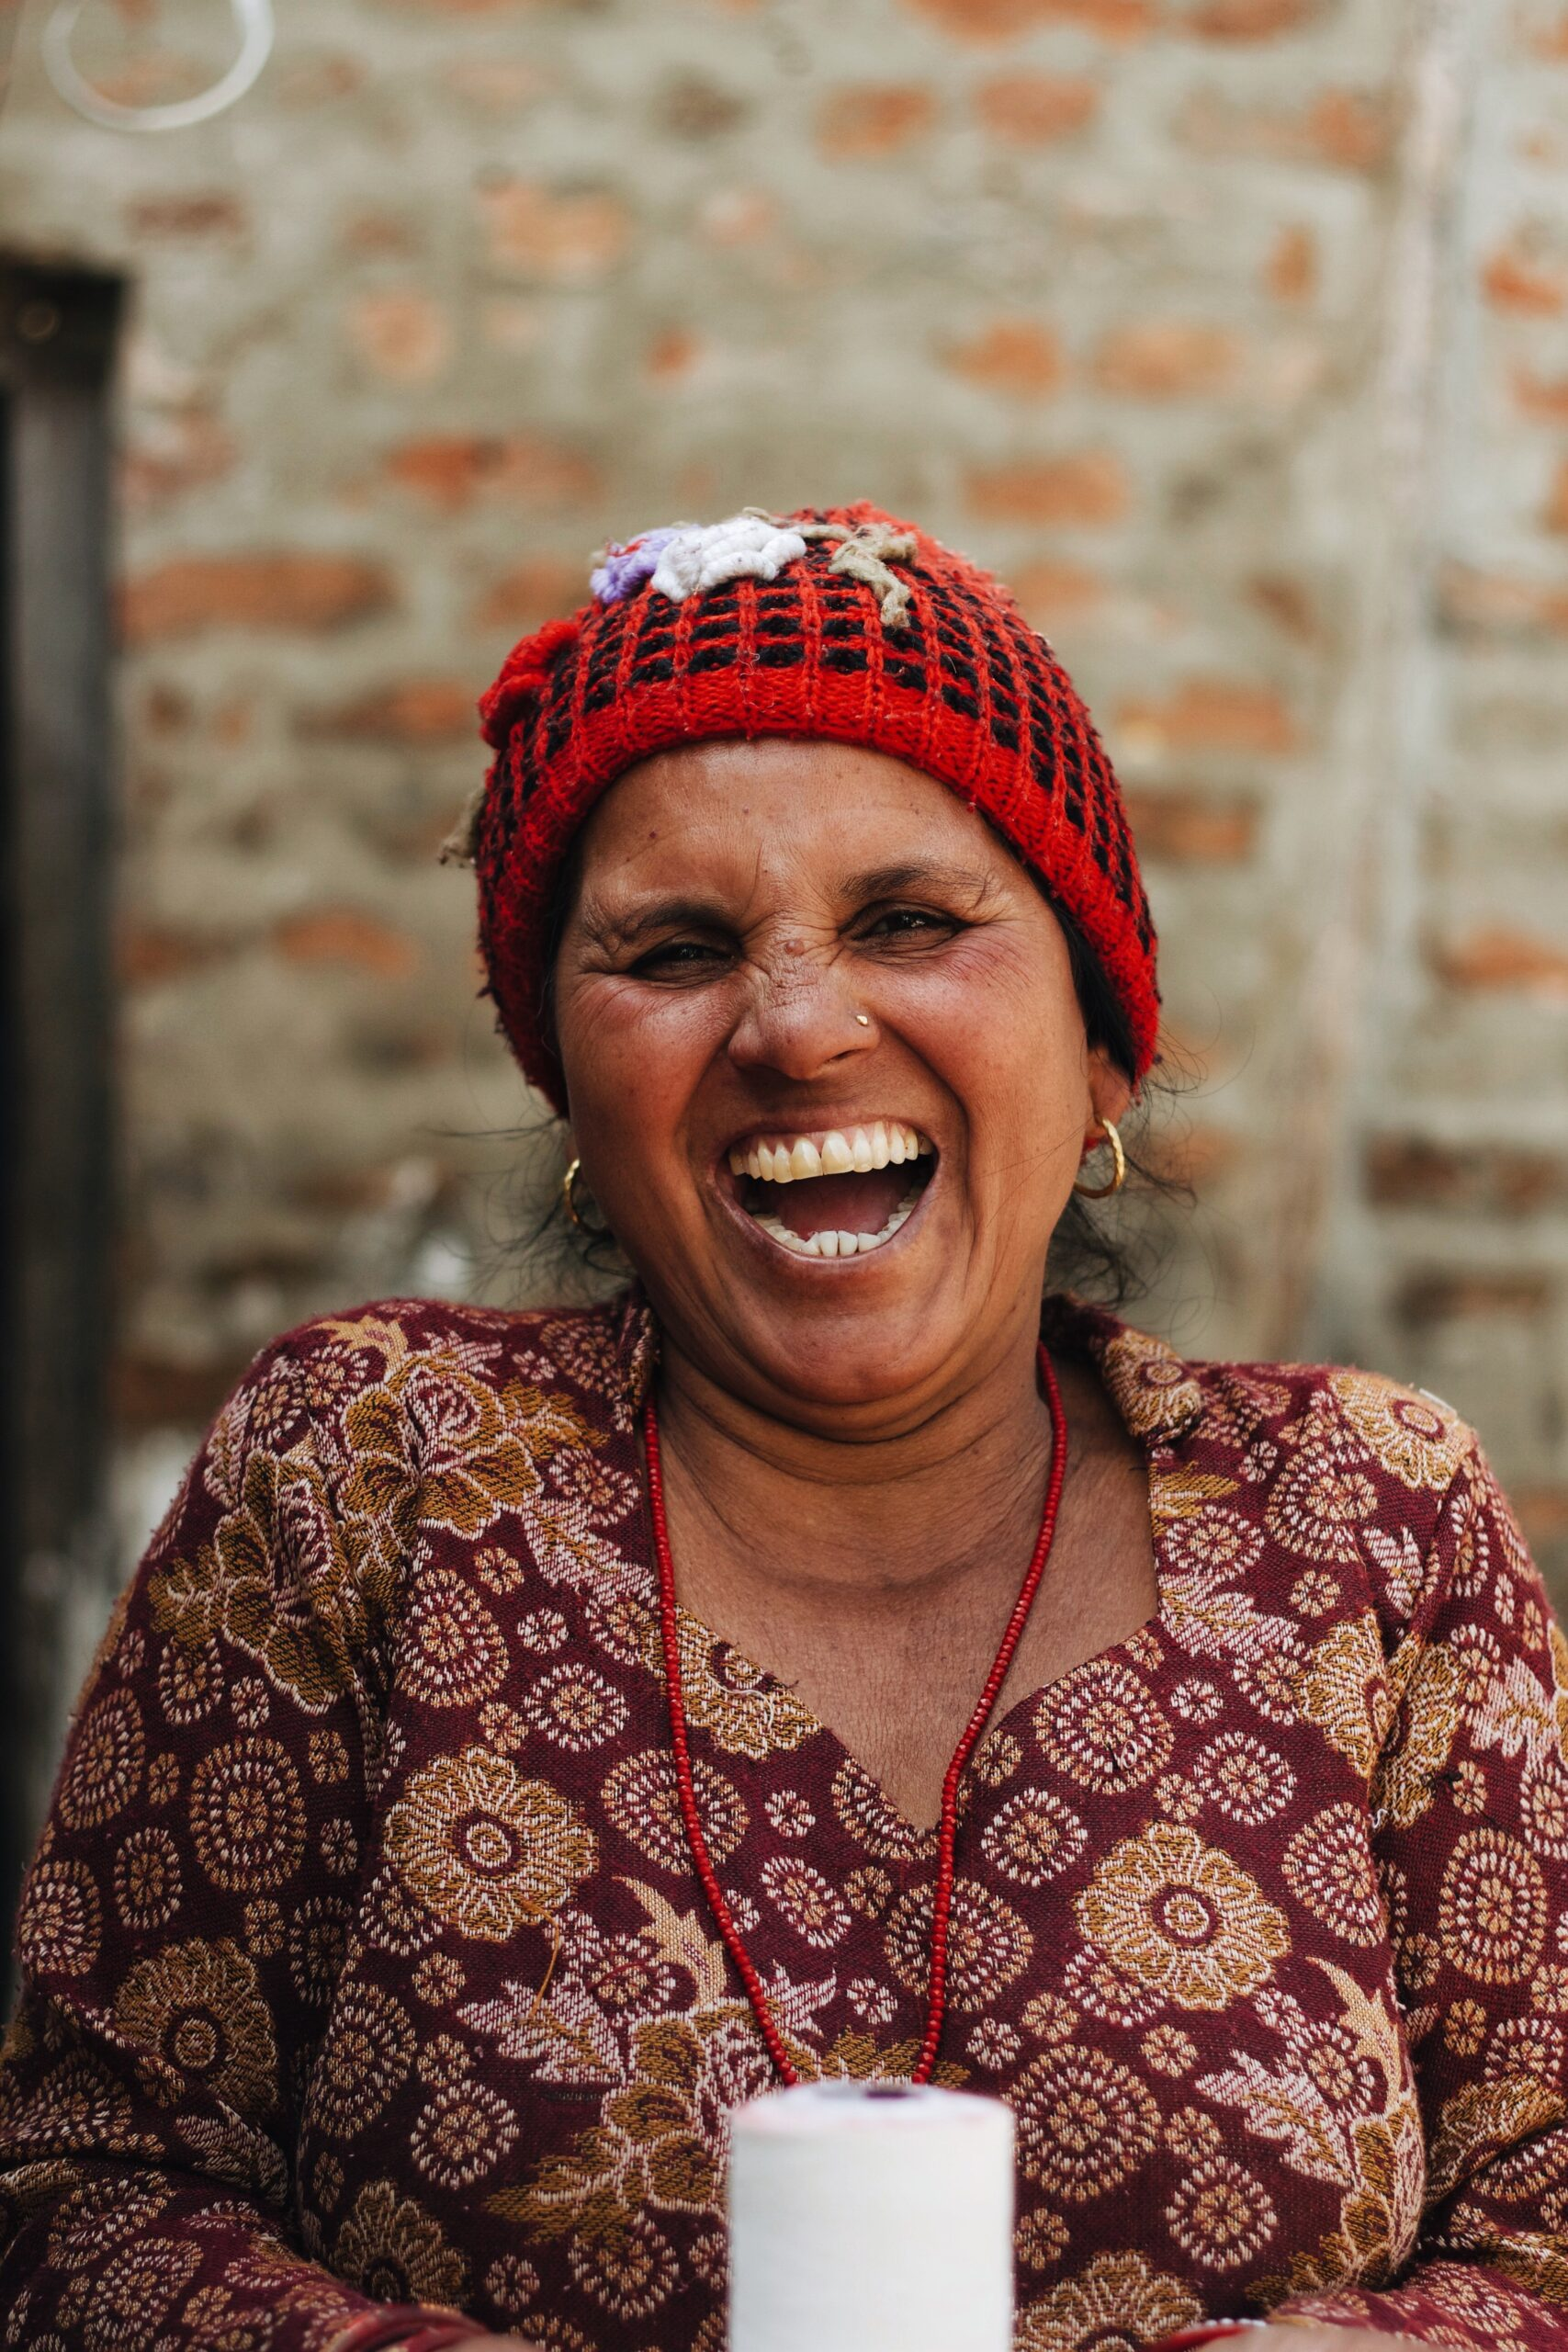 janaya-dasiuk-Woman Laughing-unsplash